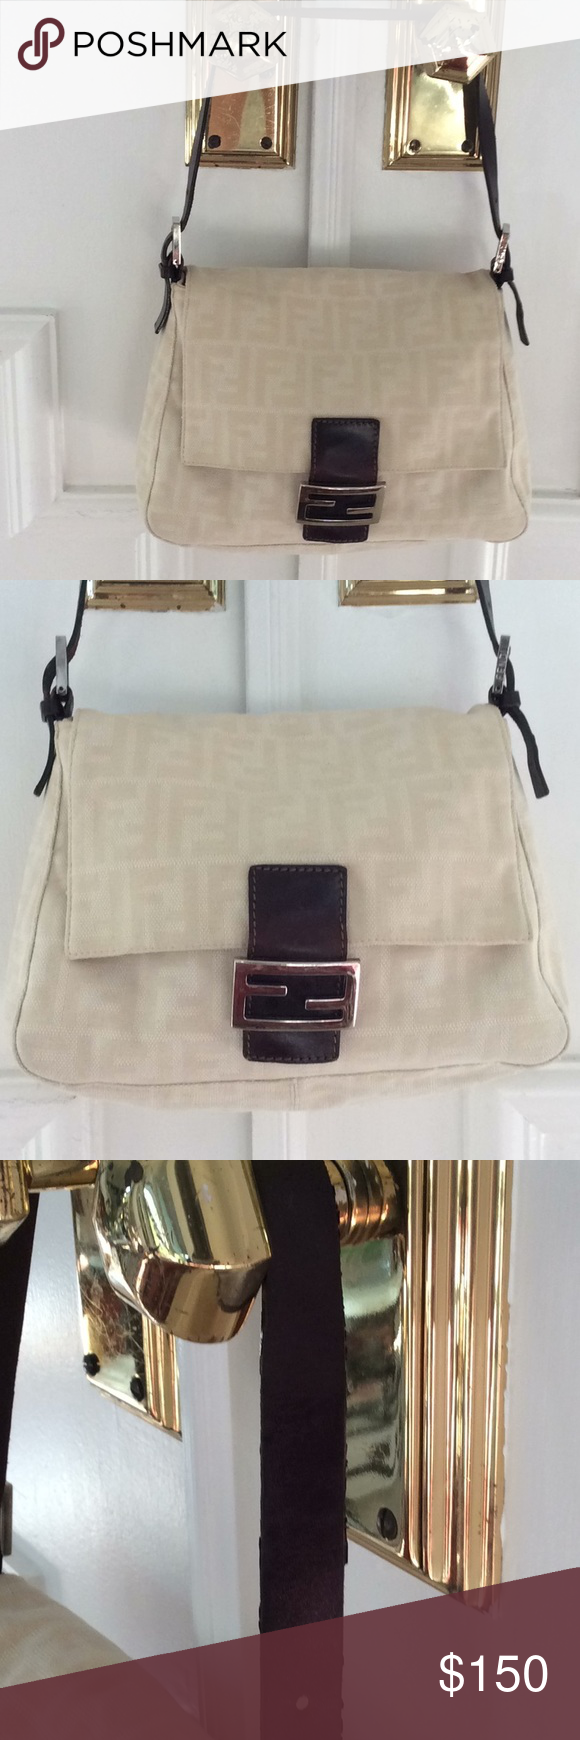 1ca92b79ae0c Authentic Fendi bag Great little bag for Summer. It s lightweight and easy  to sling over your shoulder for casual outings. Some wear on the leather  strap- ...